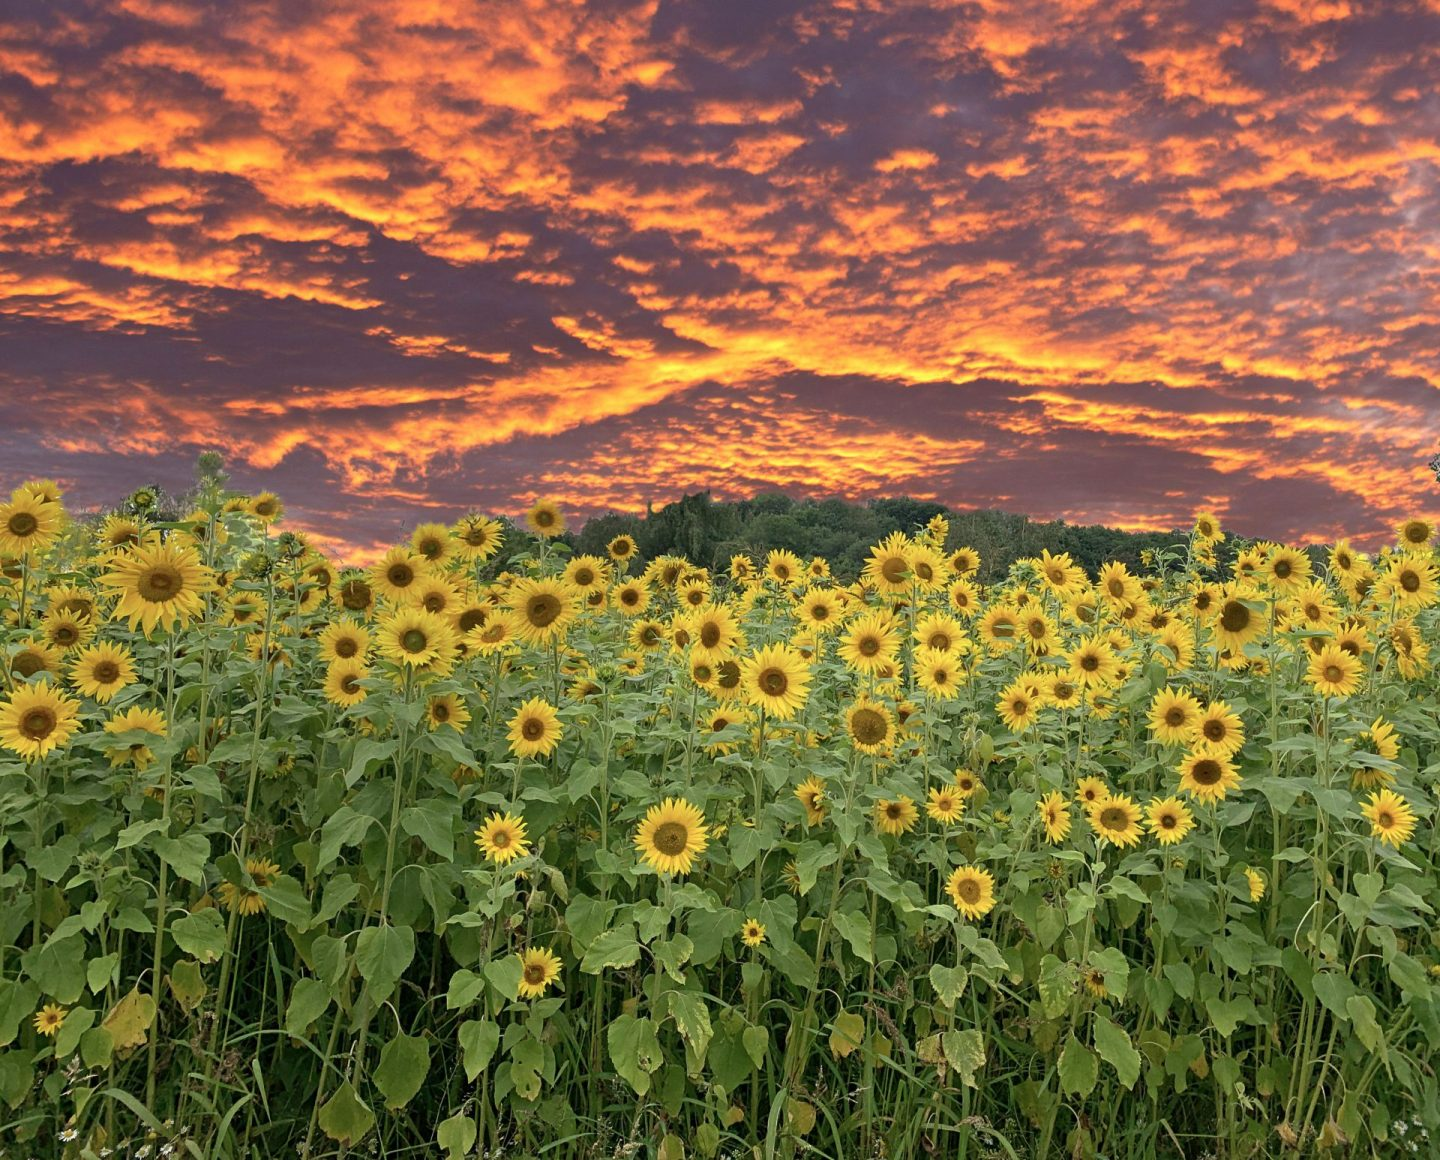 A photo representing my week.  A dramatic sky over a field of sunflowers.